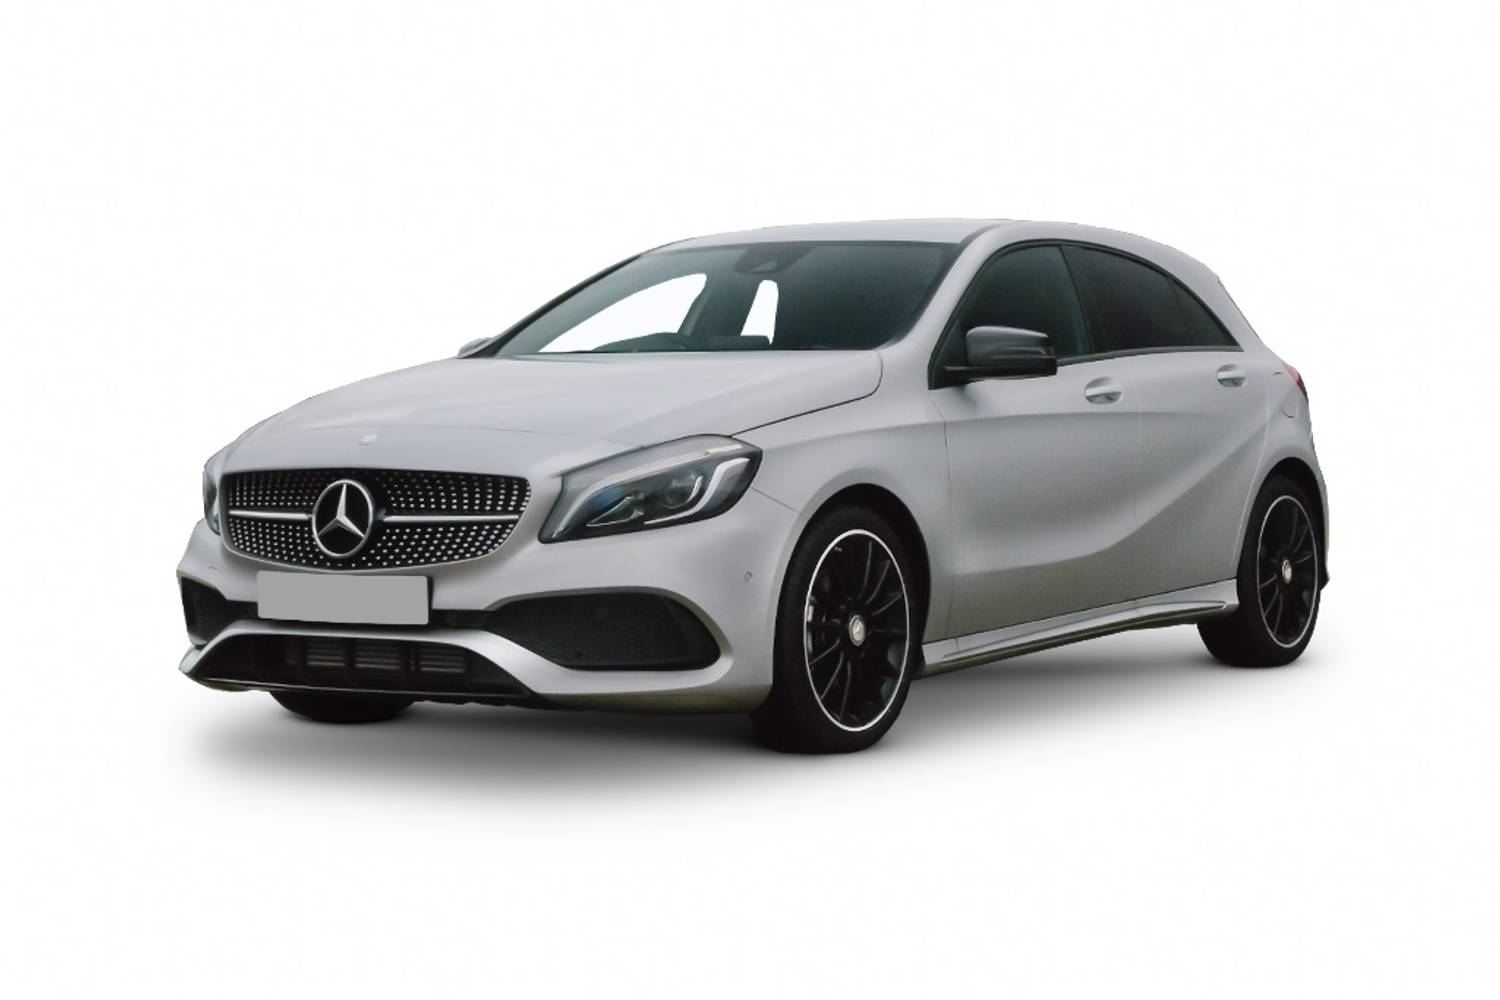 new mercedes benz a class hatchback a180 se executive 5 door auto 2015 for sale. Black Bedroom Furniture Sets. Home Design Ideas